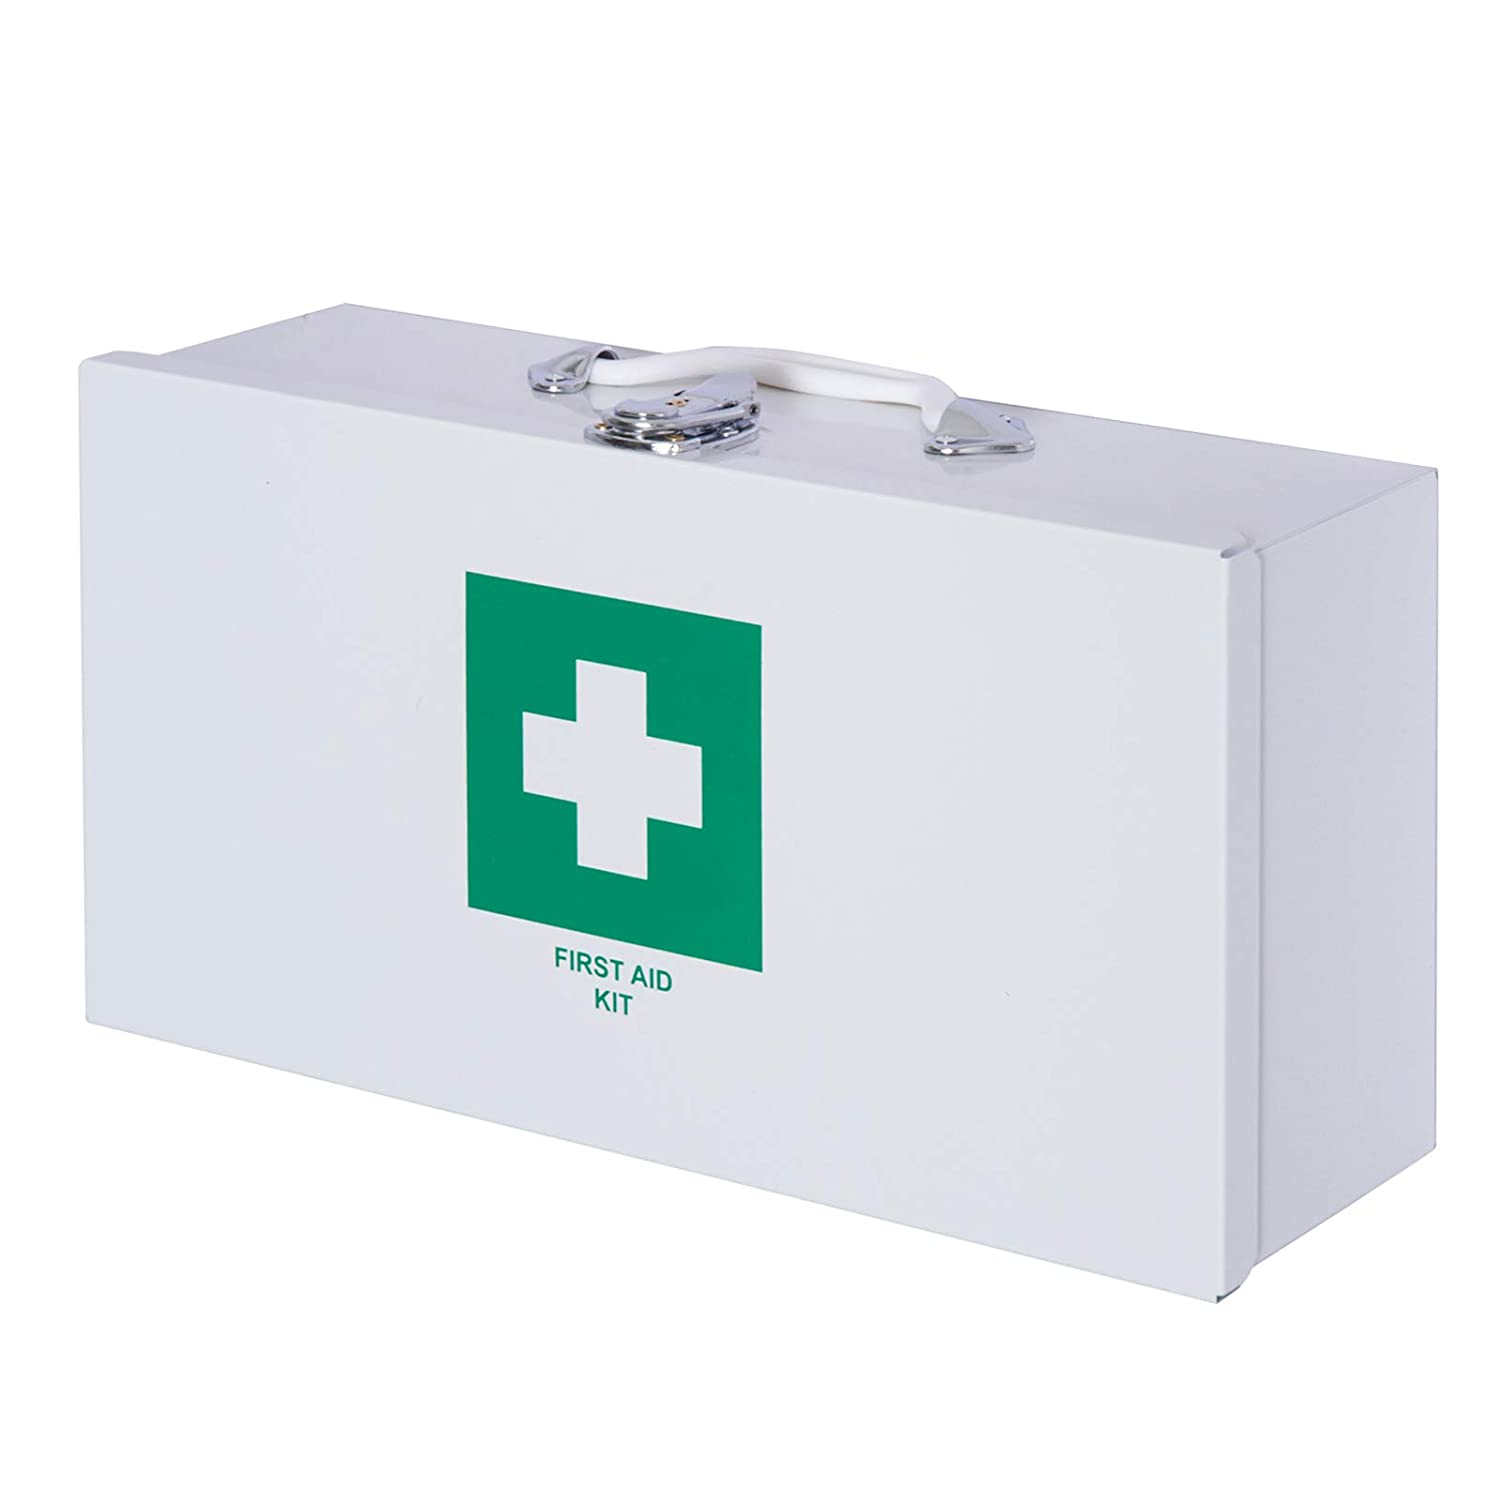 HOMCOM Metal Medical Cabinet First Aid Kit Case for Home Office Wall Mounted Lockable Storage Box White Sold by MHSTAR UK713-0360331